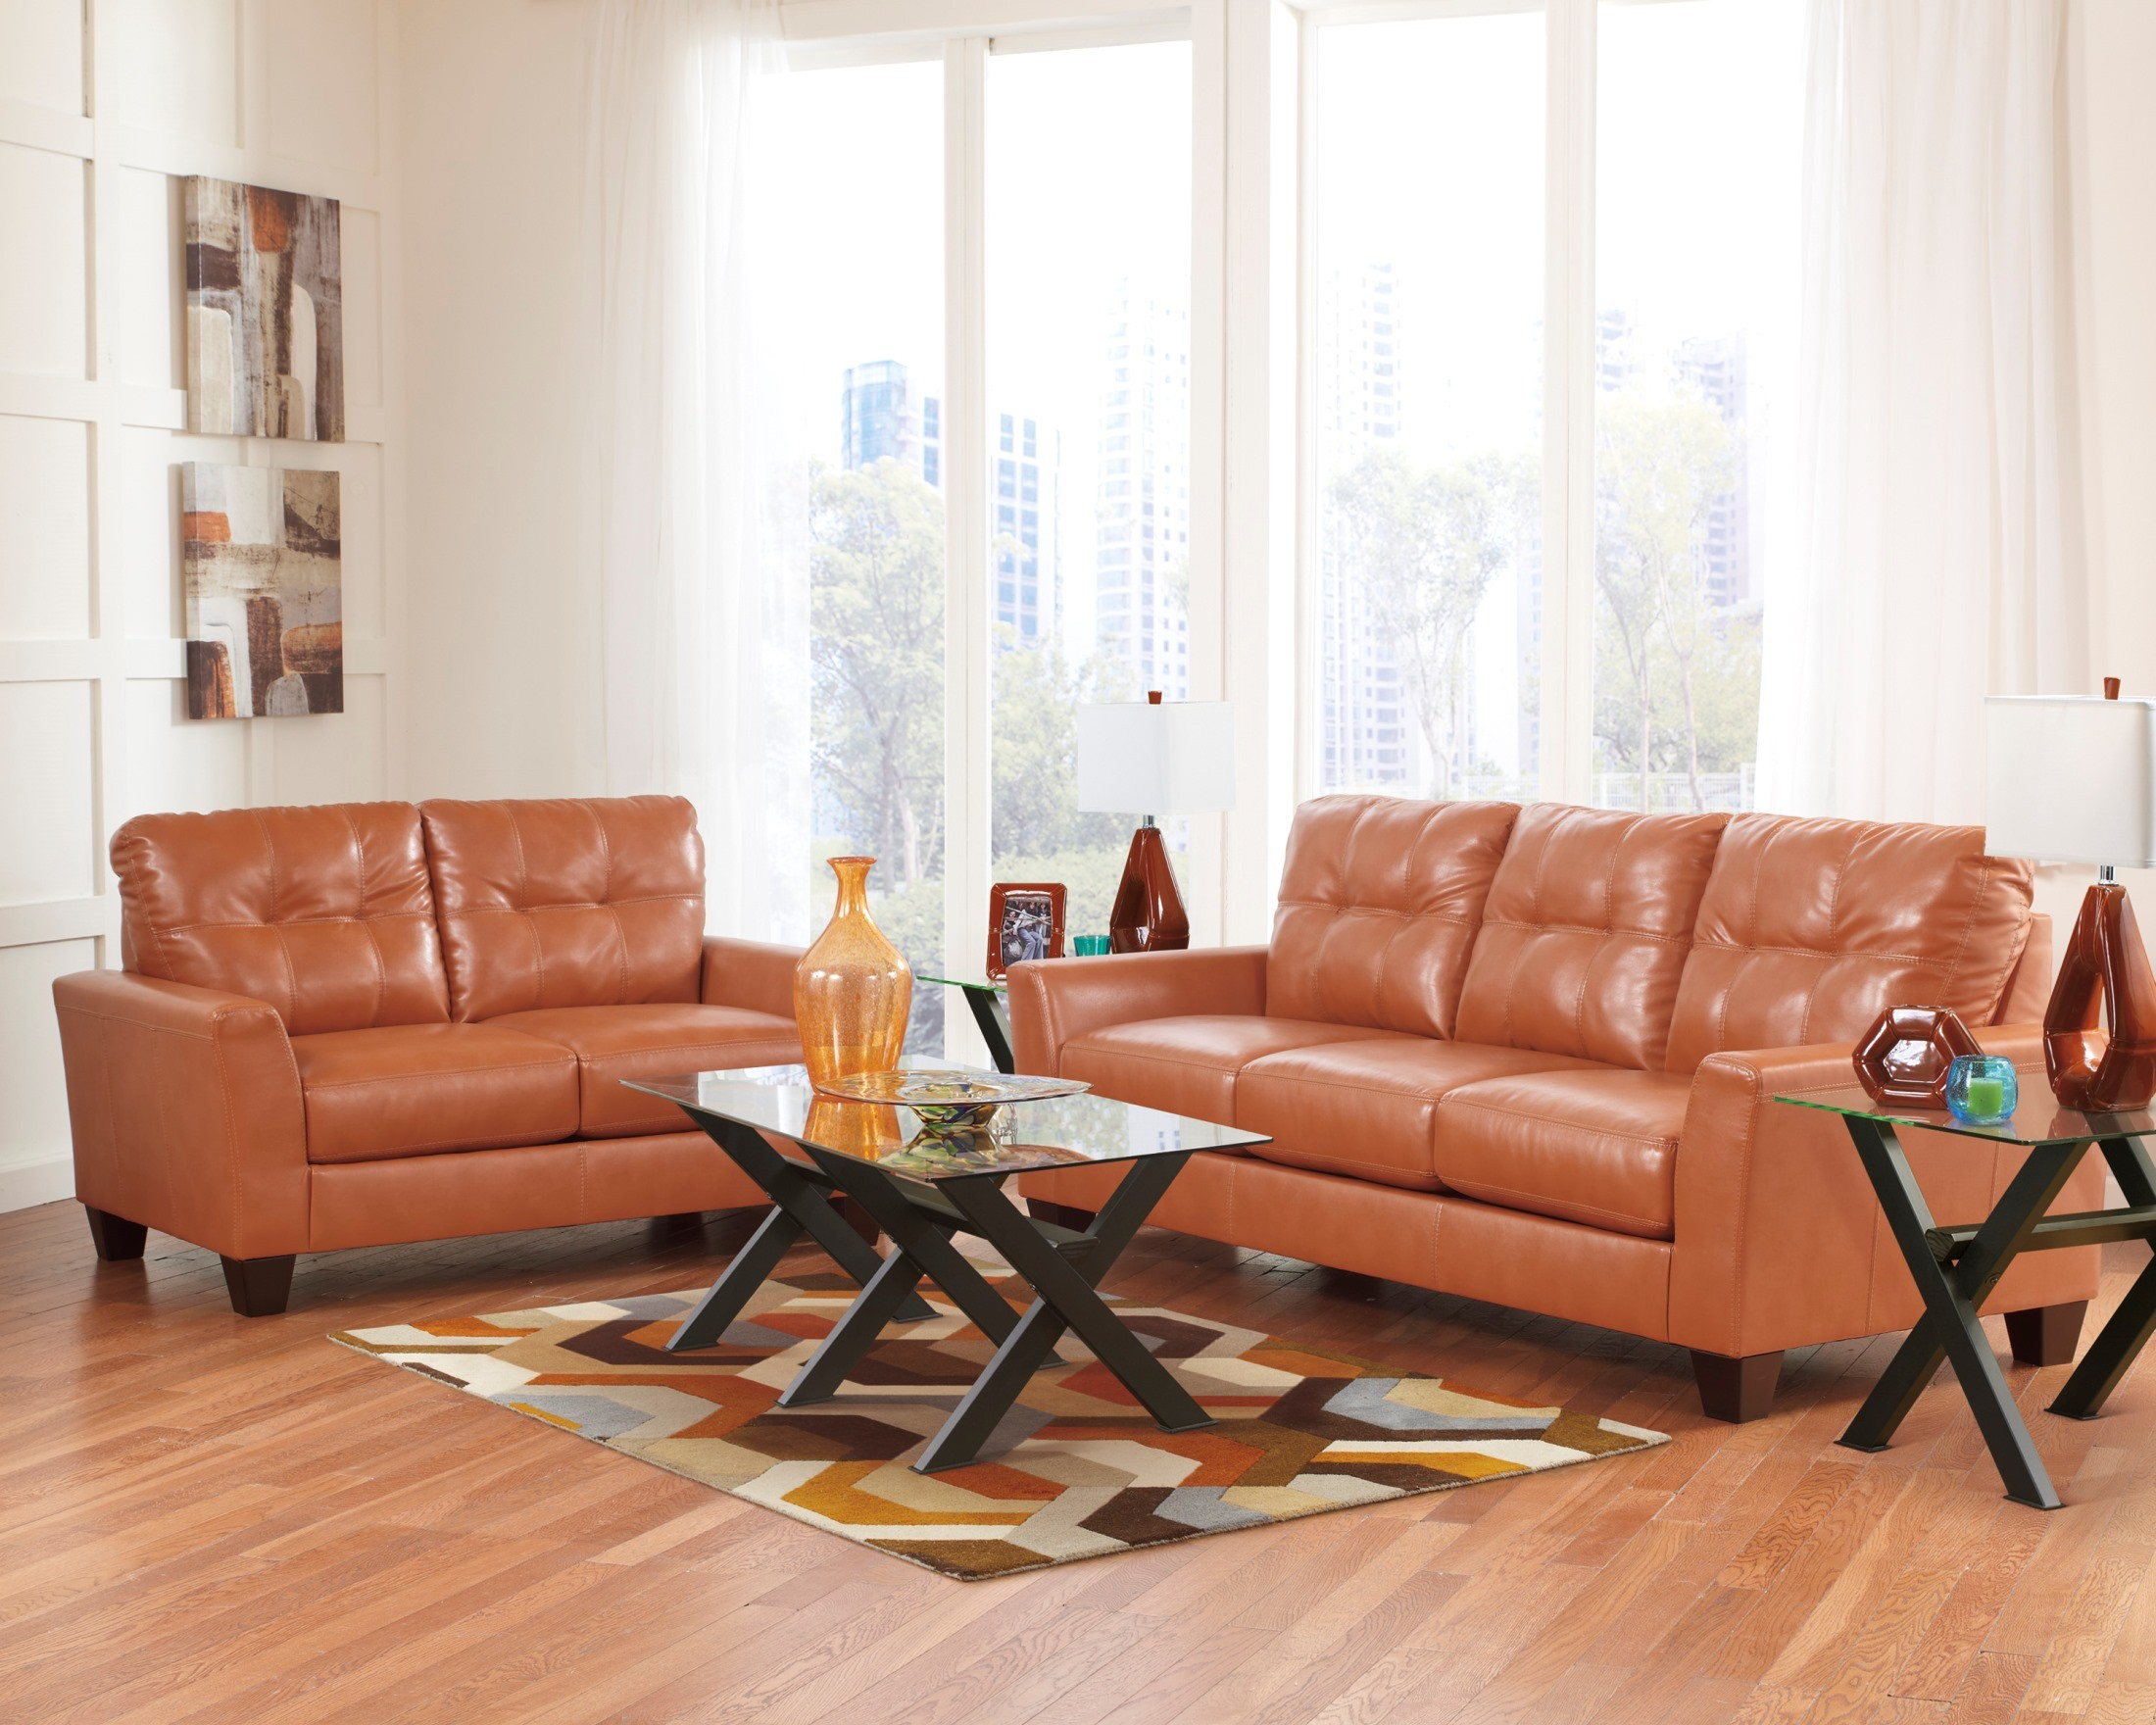 paulie durablend orange living room set from ashley 27002 38 35 coleman furniture